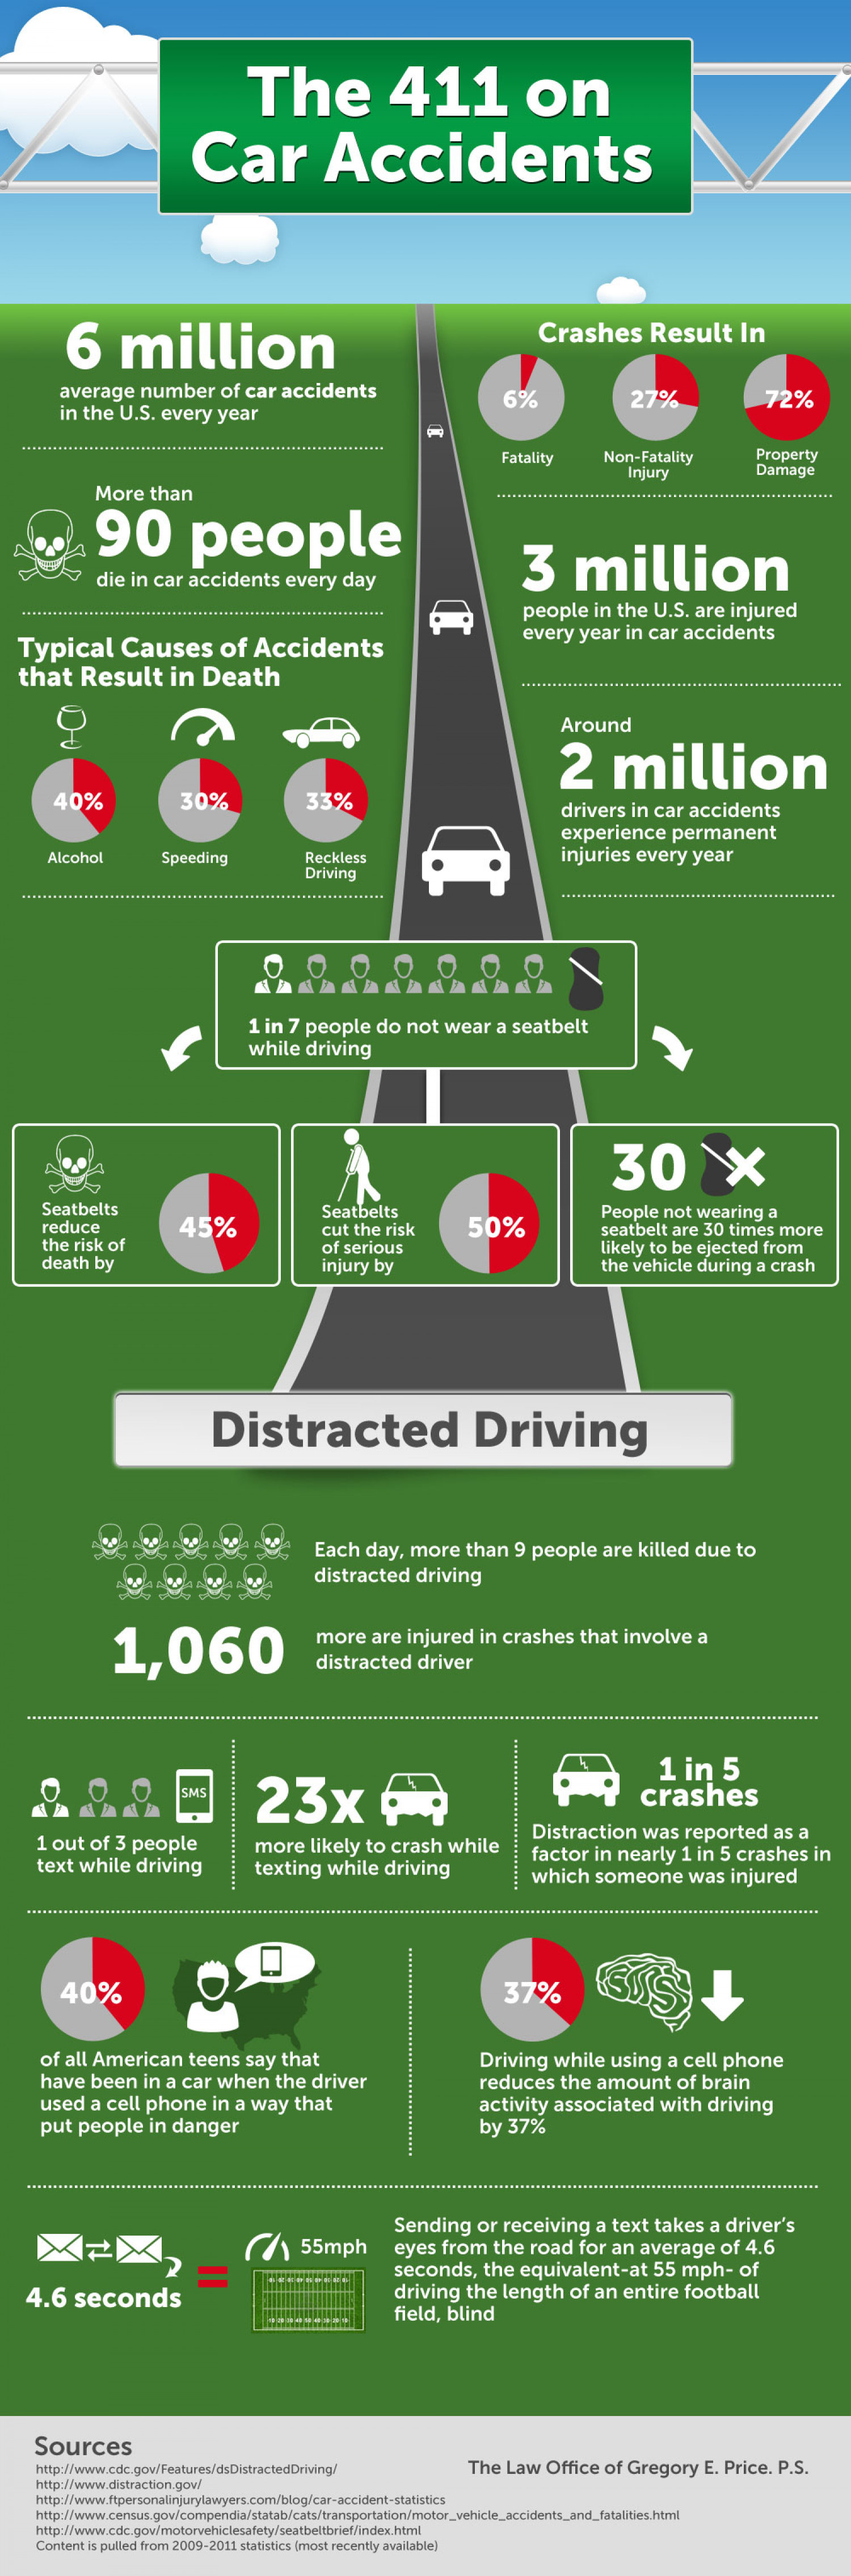 The 411 on Car Accidents  Infographic